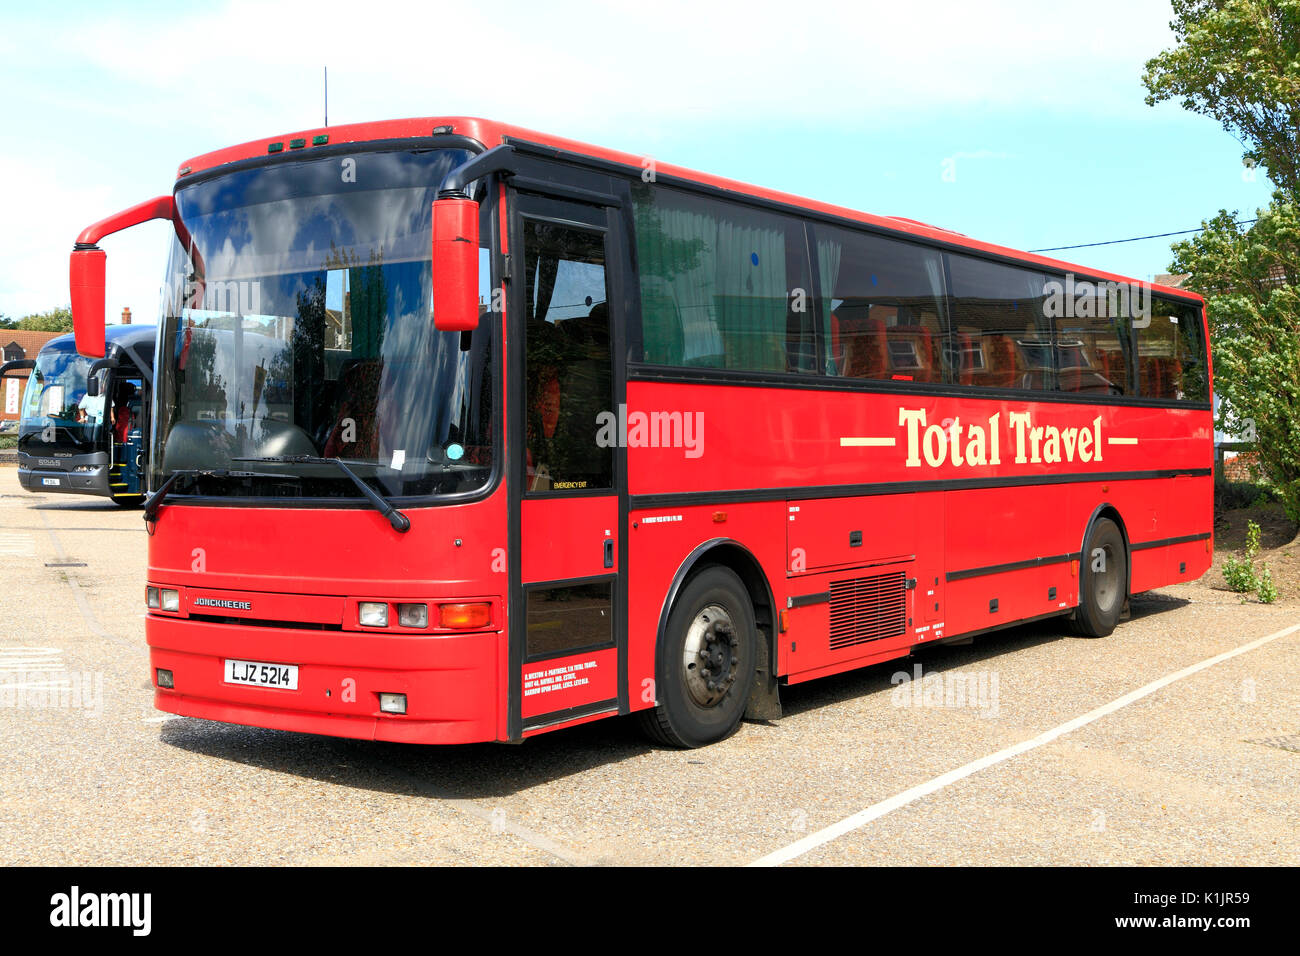 Total Travel, coach, coaches, day trips, trip, excursion, excursions, company, companies, England, UK. - Stock Image